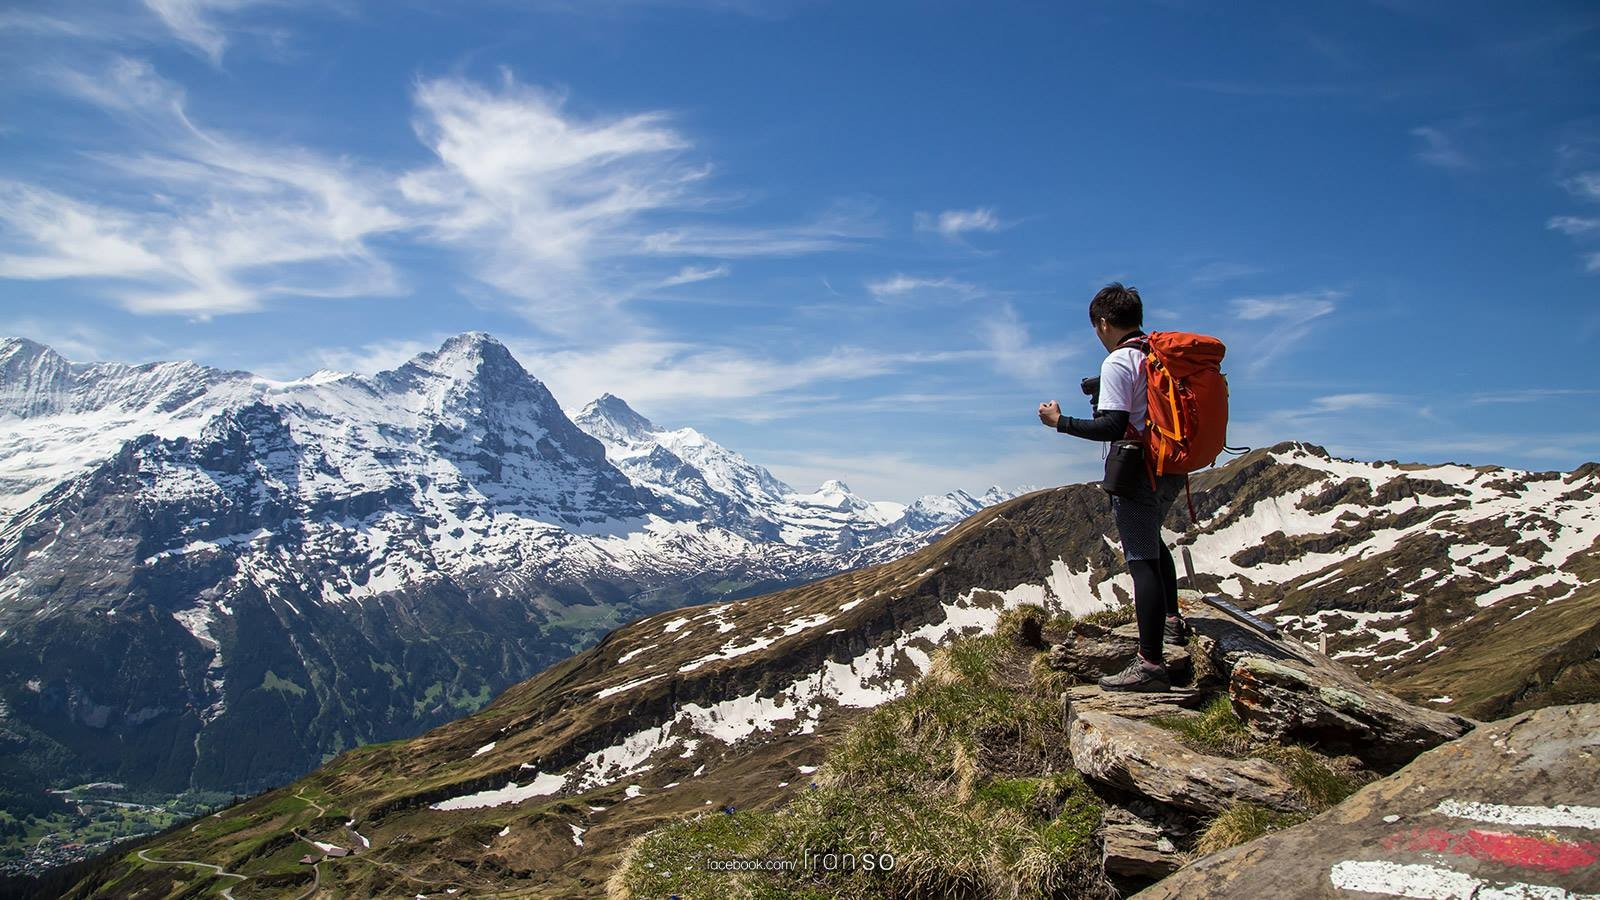 Landscape | Switzerland | Hiking at First  | Selfie